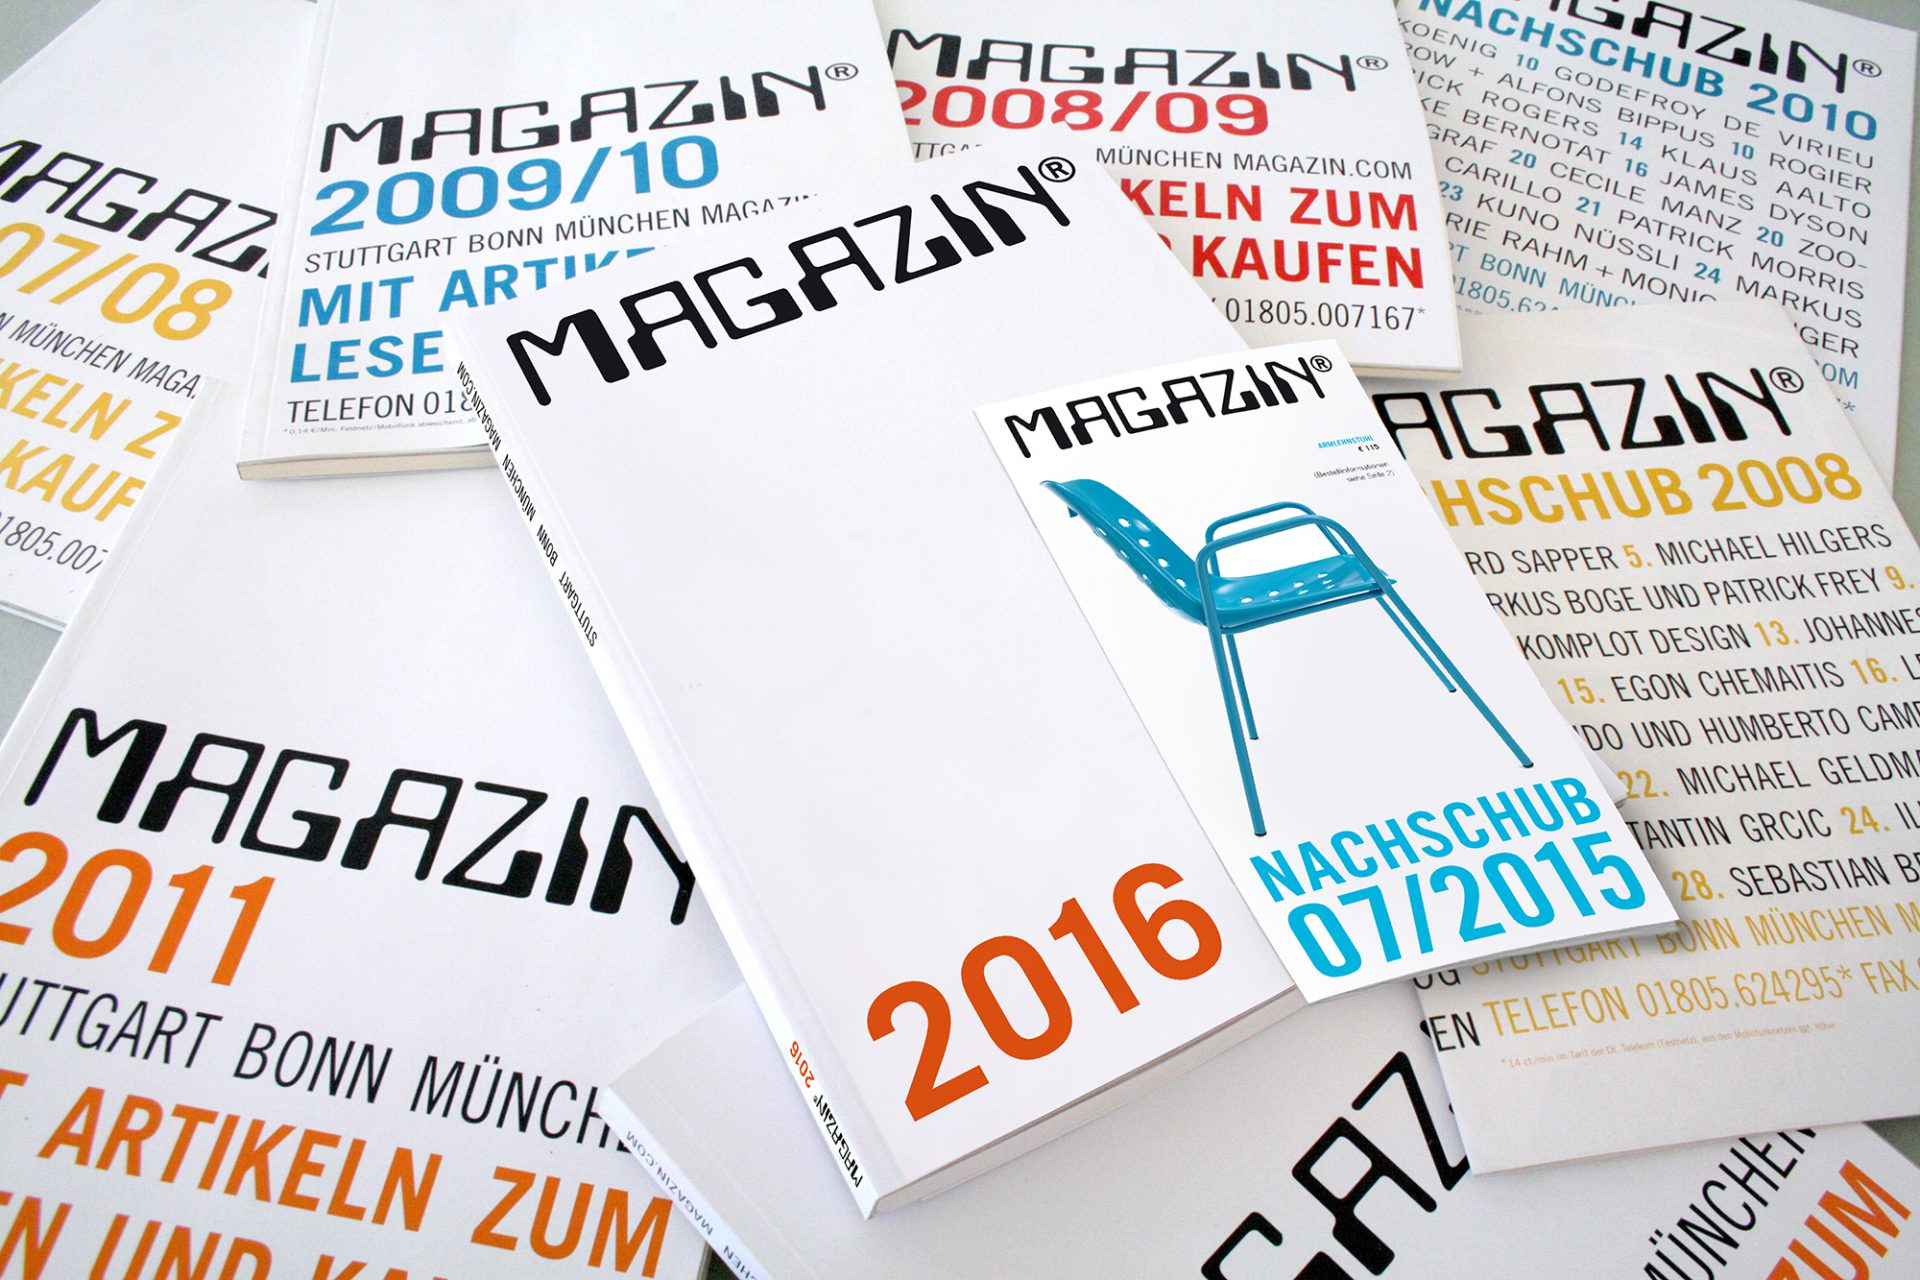 Magazin Multichannel Communication Magazine